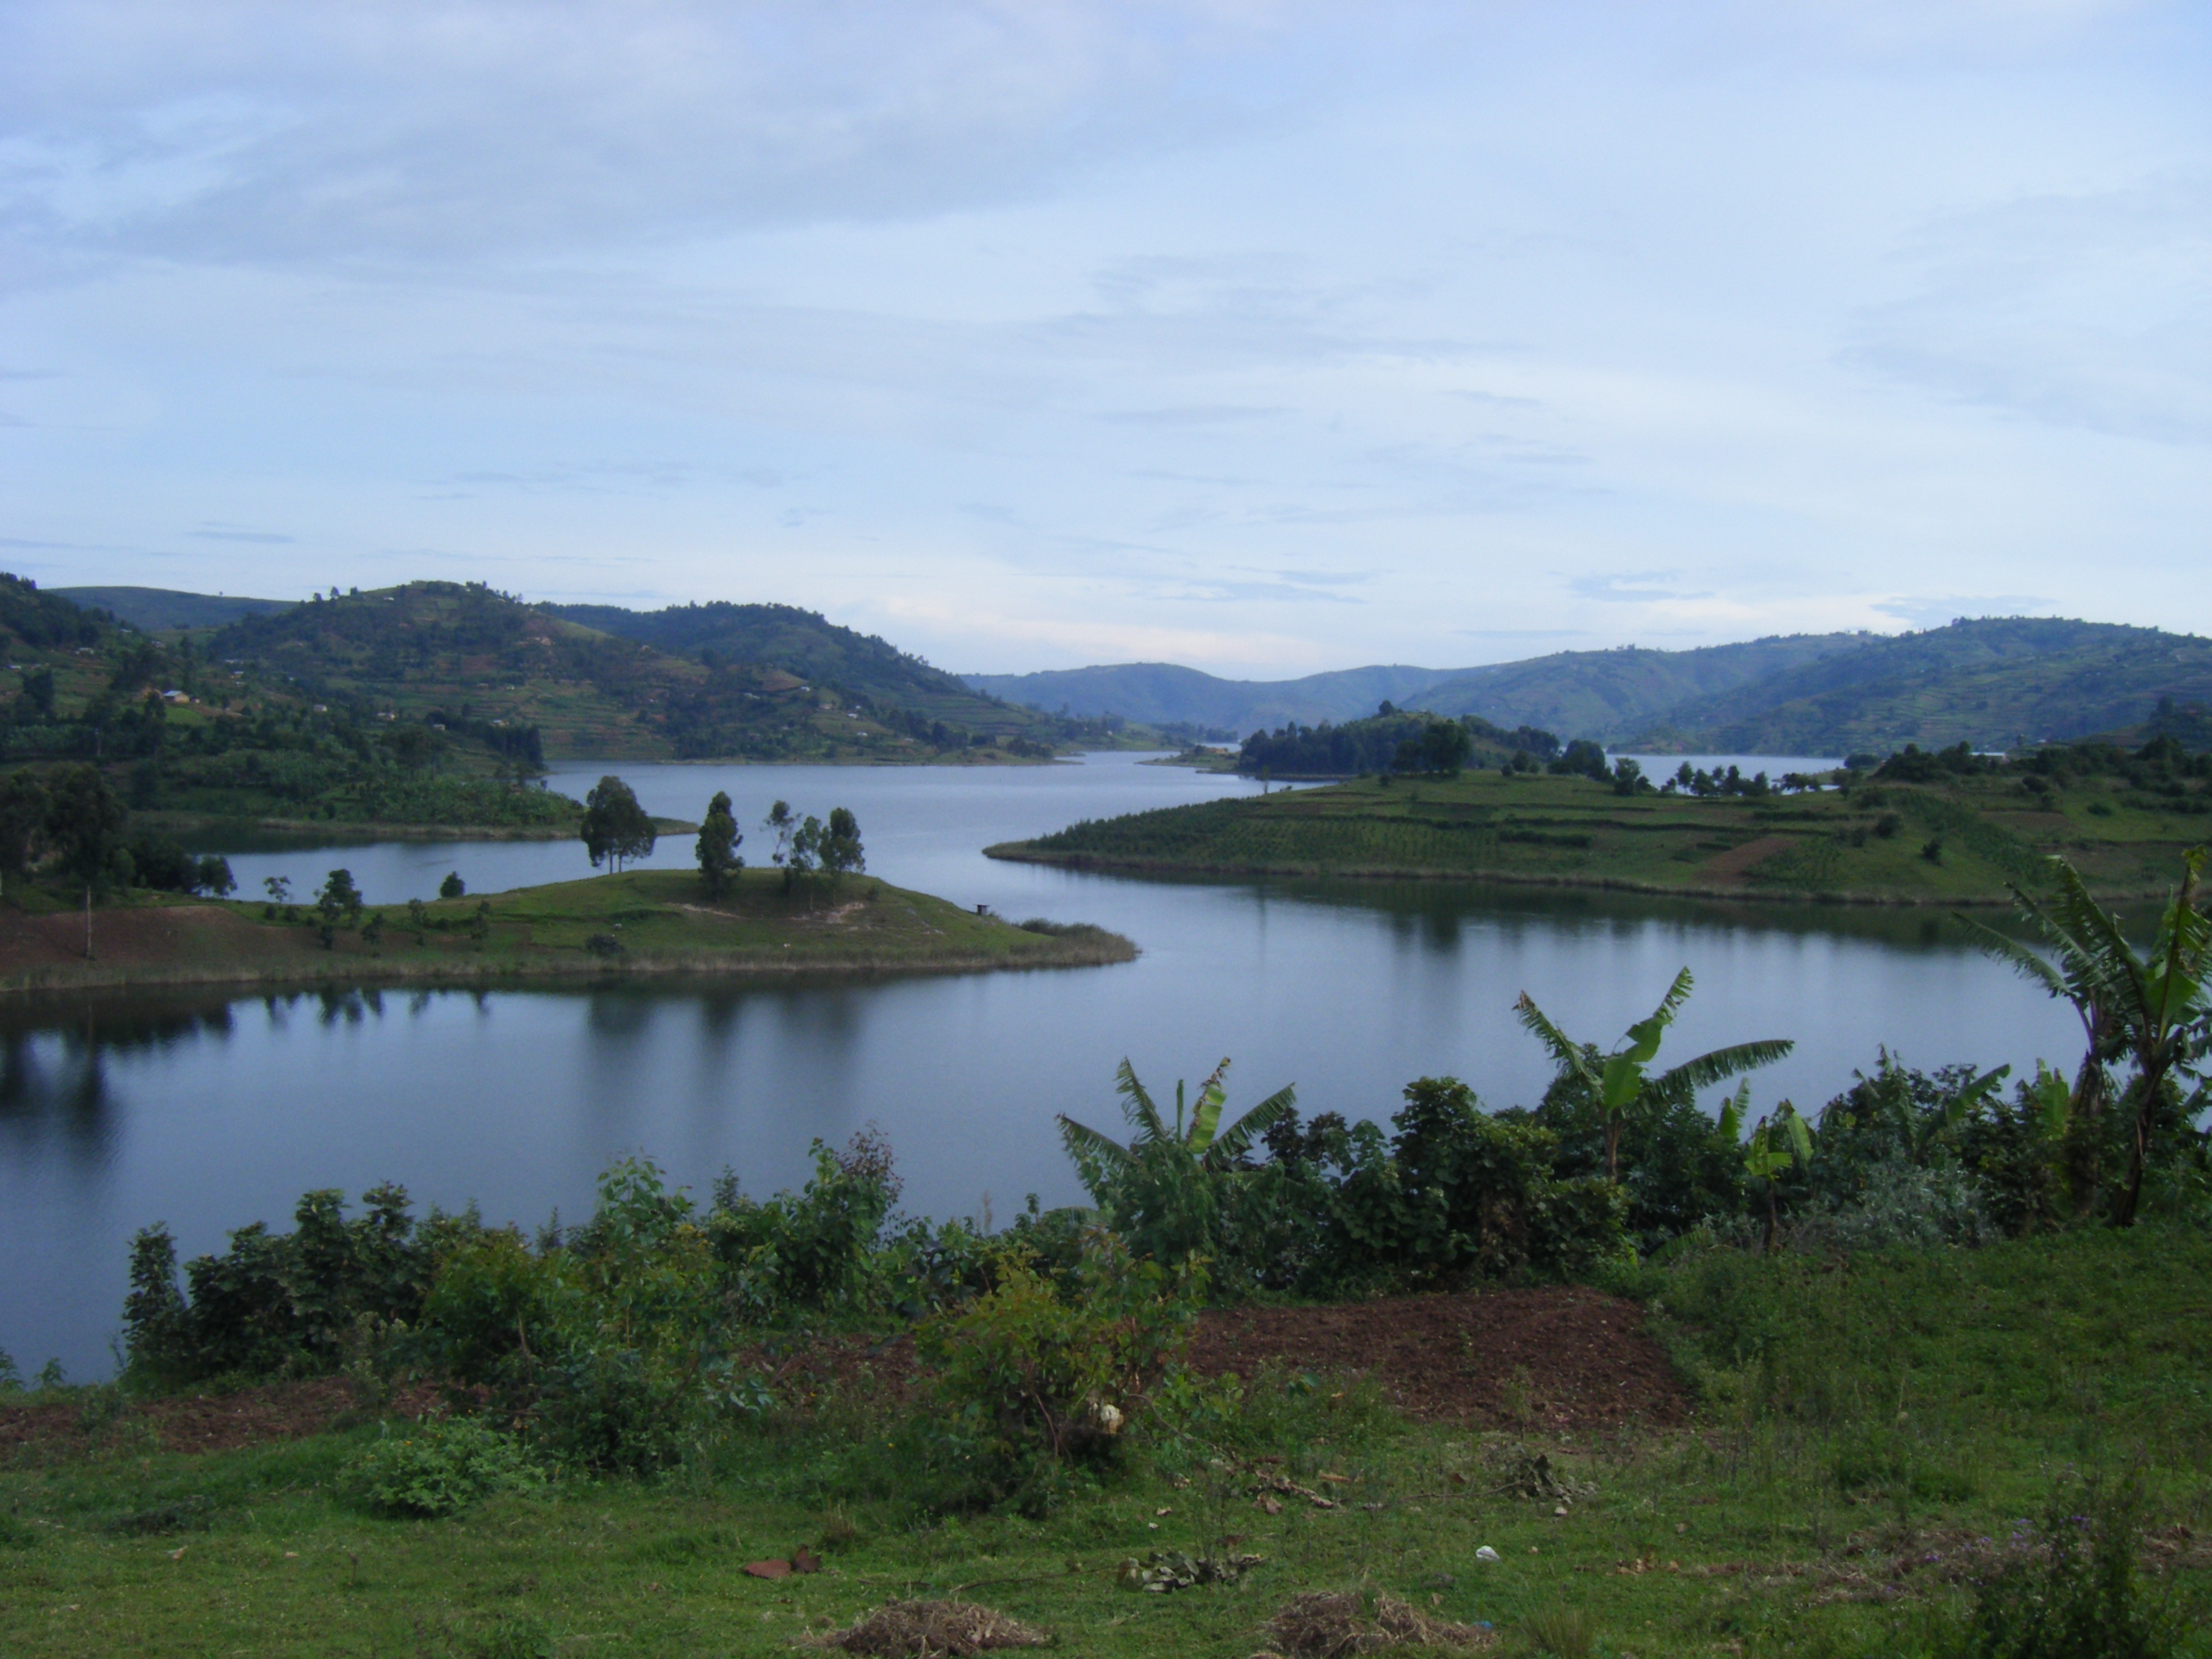 Bunyonyi: Uganda's Great Lake